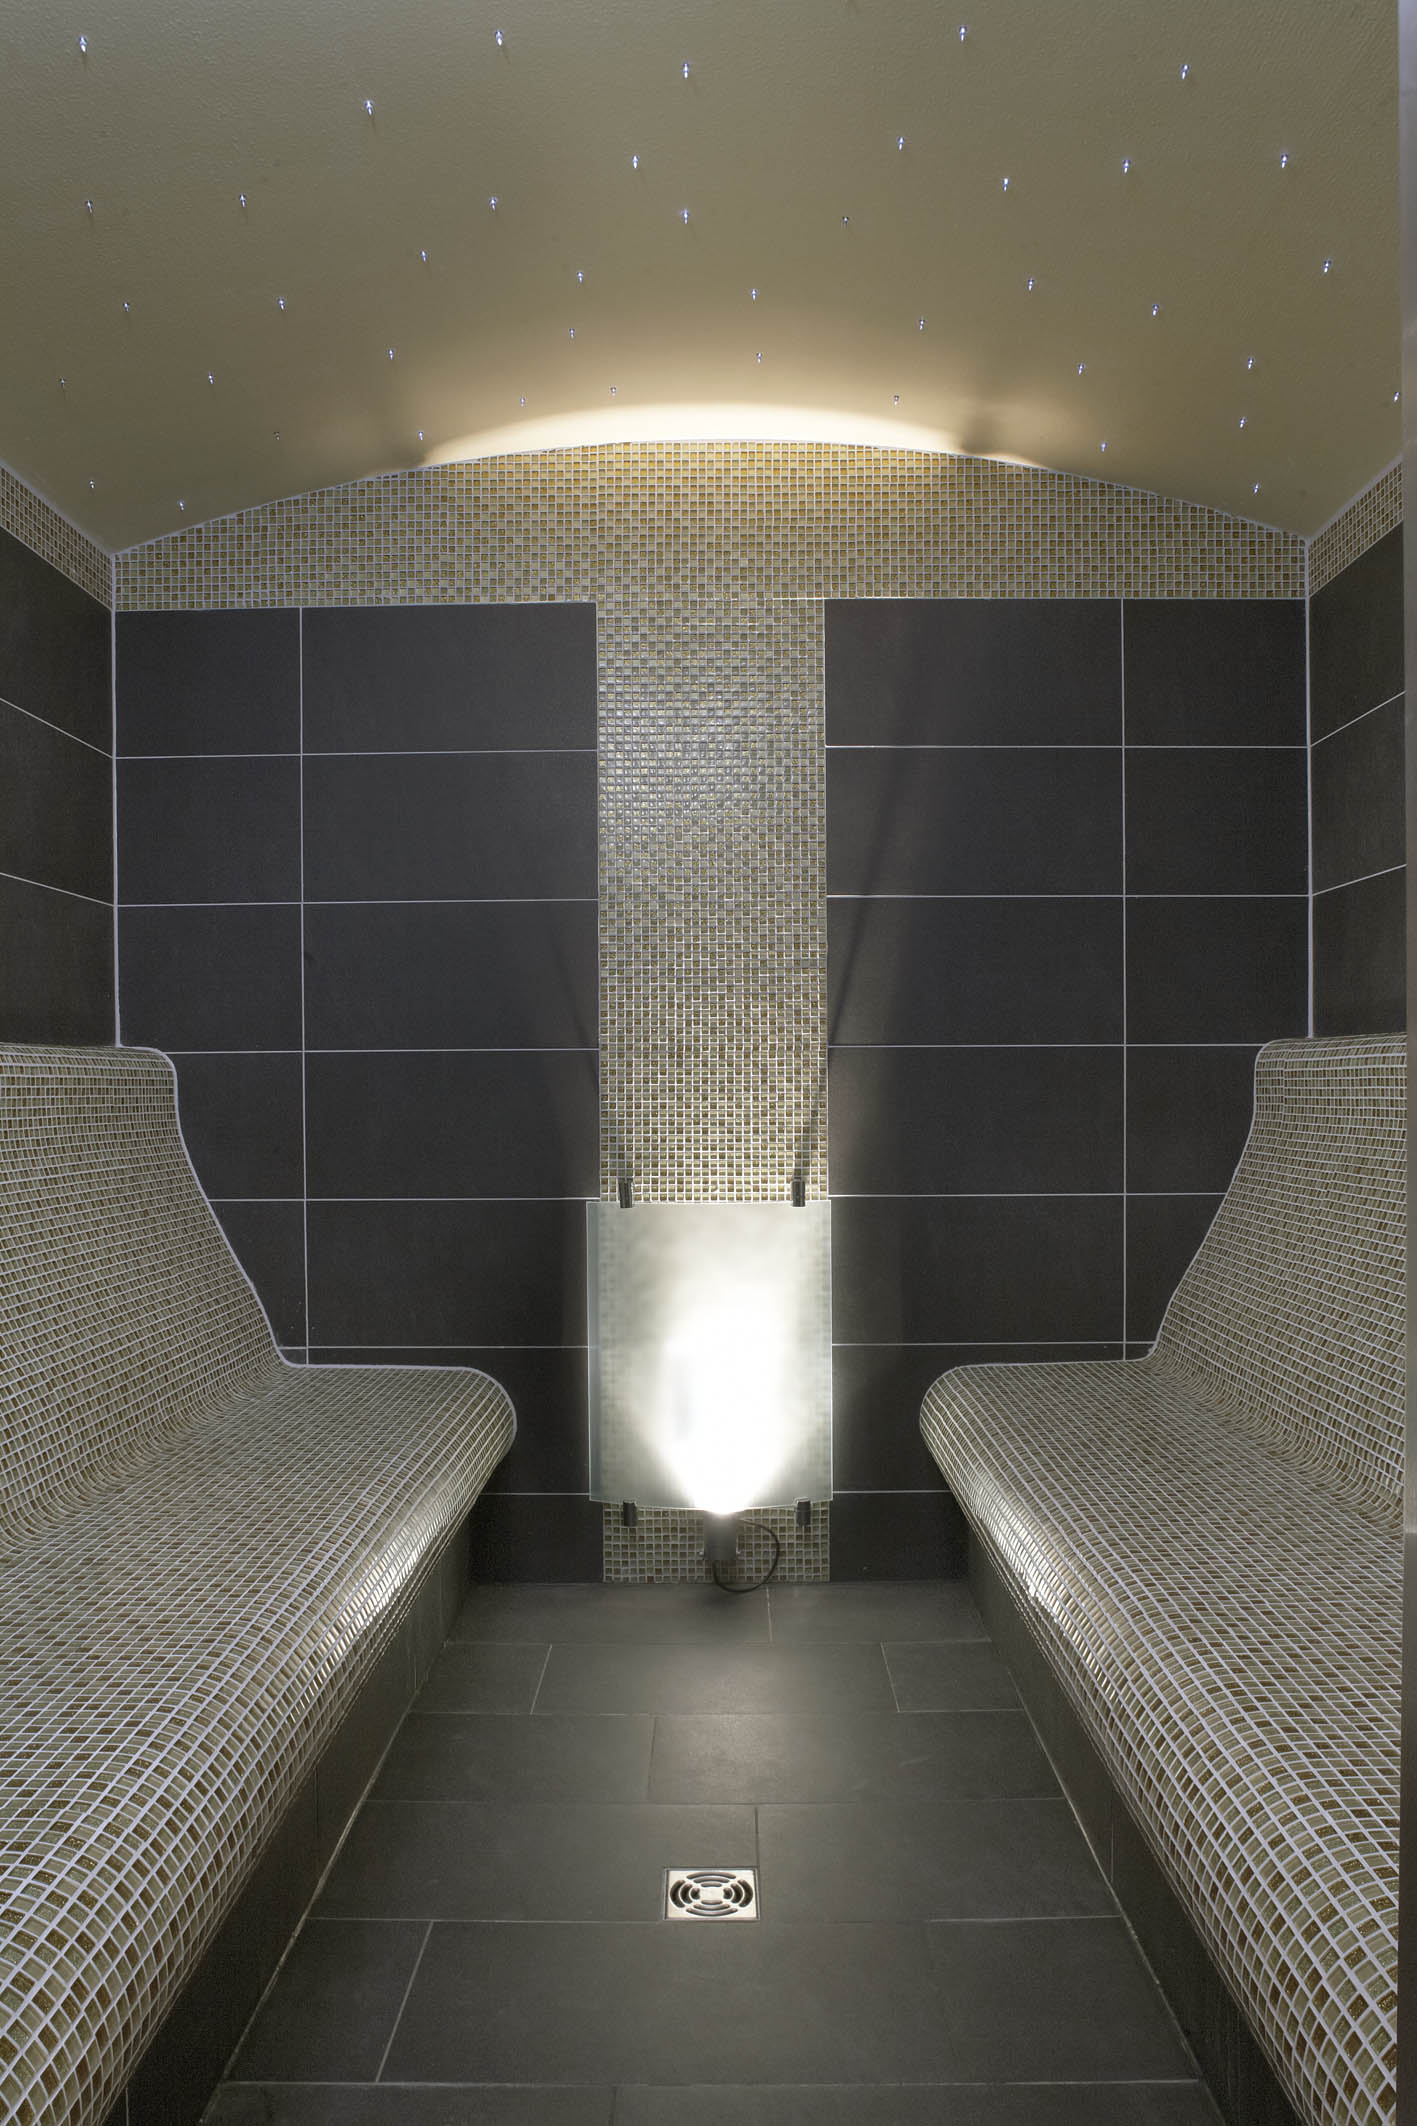 Wedi systems uk ltd for Steam room design plans